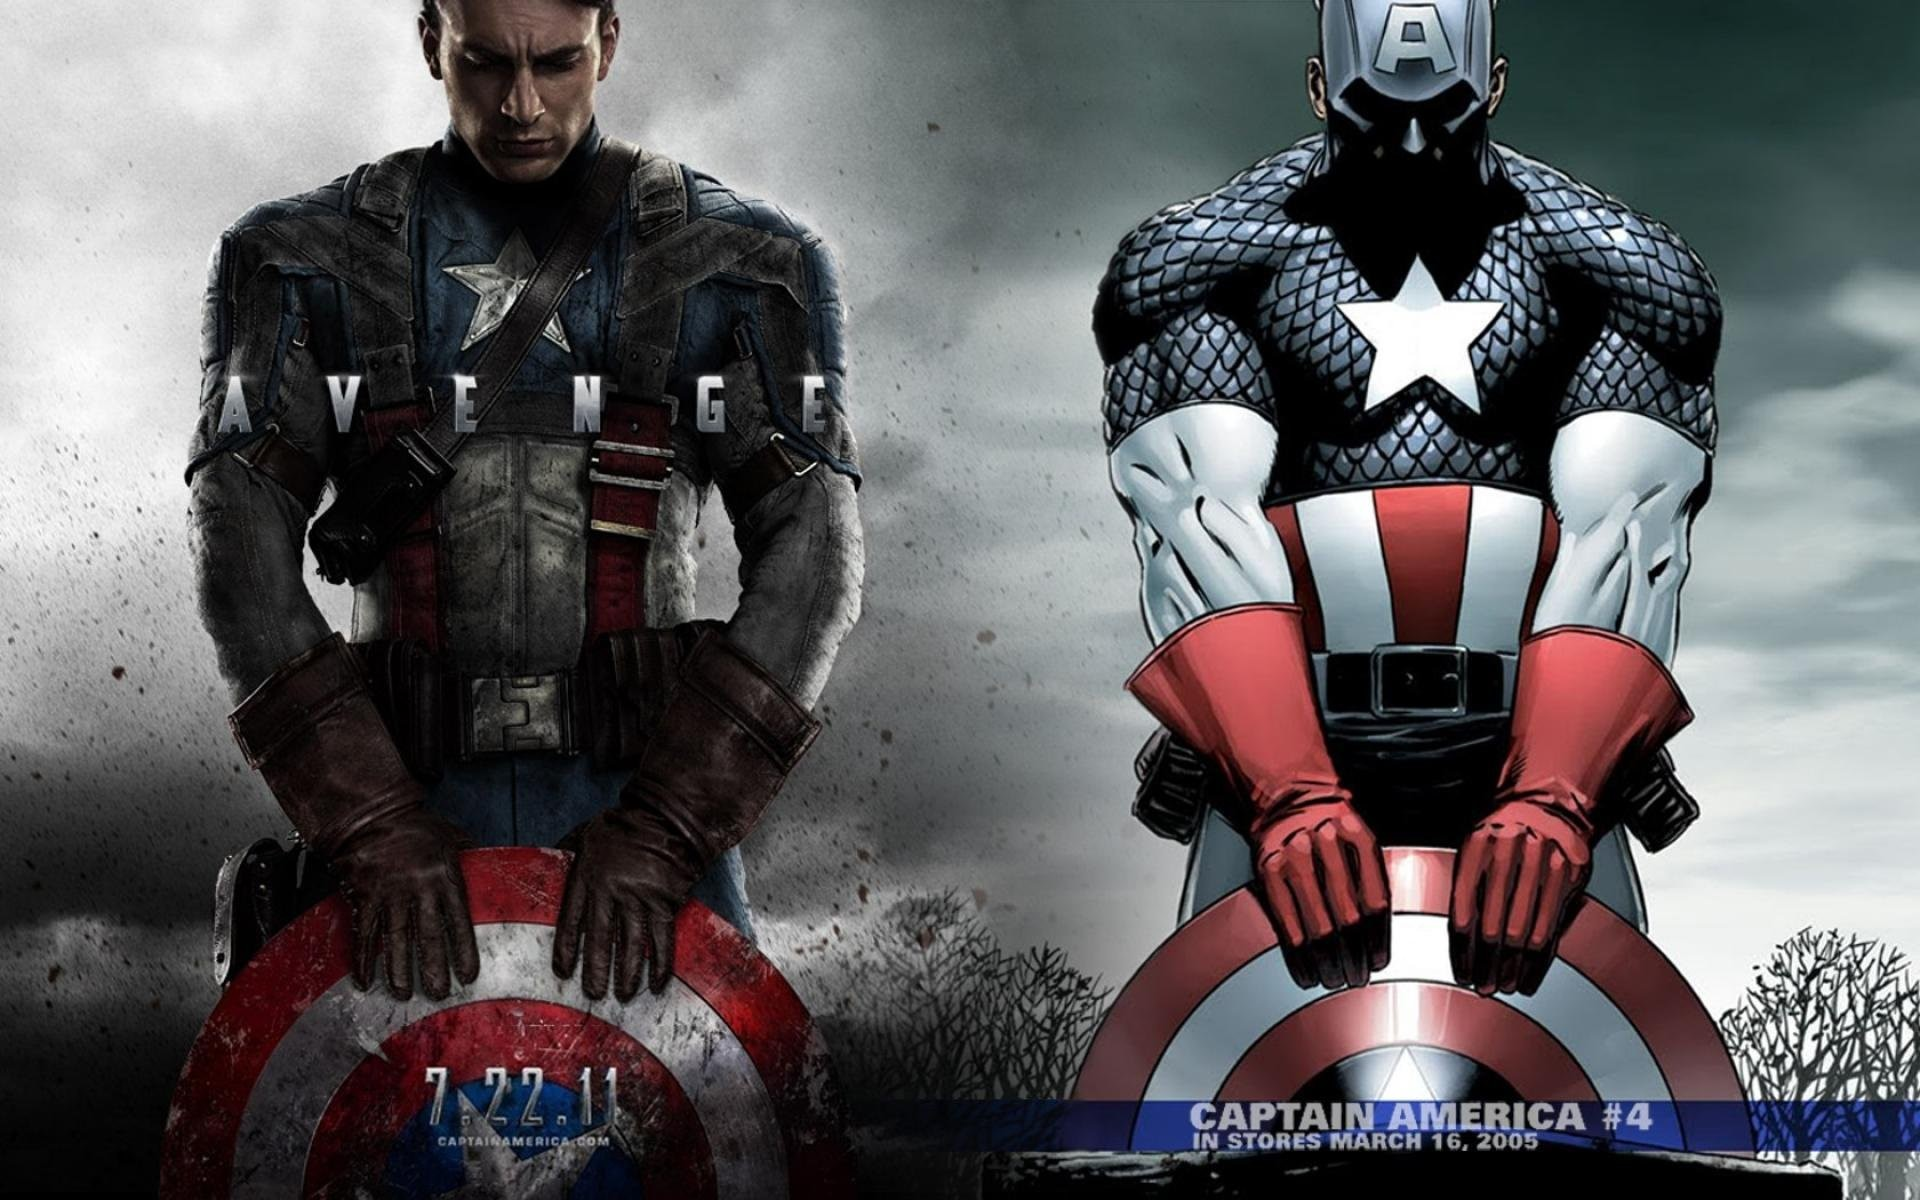 1920x1200 CAPTAIN AMERICA 3 Civil War marvel superhero action fighting 1cacw warrior  sci-fi avengers poster wallpaper |  | 843300 | WallpaperUP